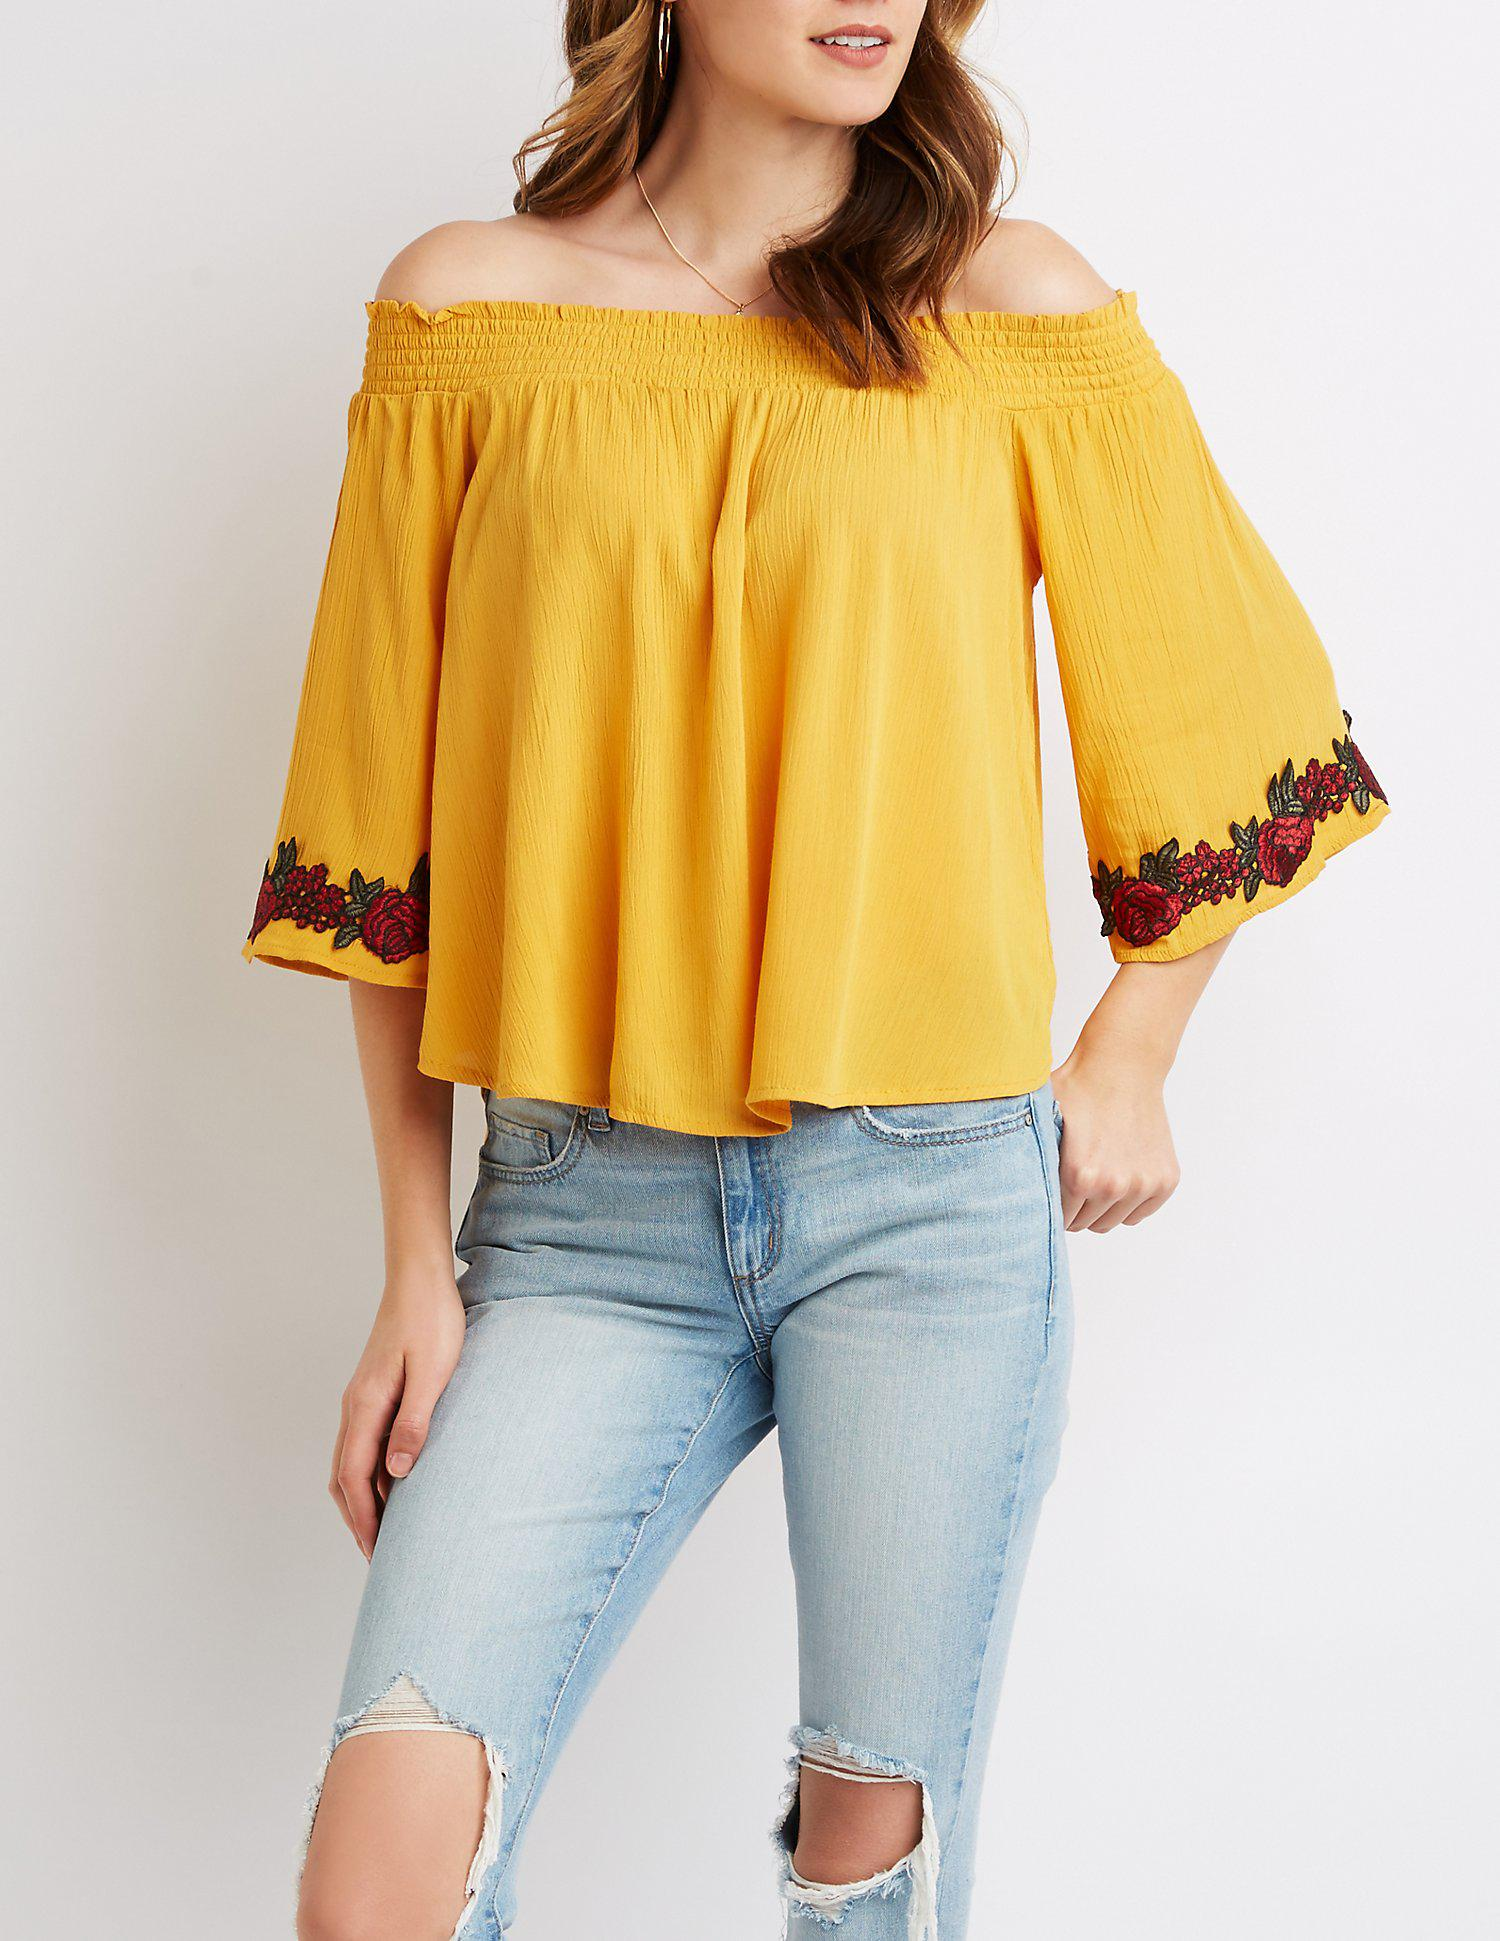 6670d2fb2c65a6 Lyst - Charlotte Russe Floral Embroidered Smocked Off-the-shoulder Top